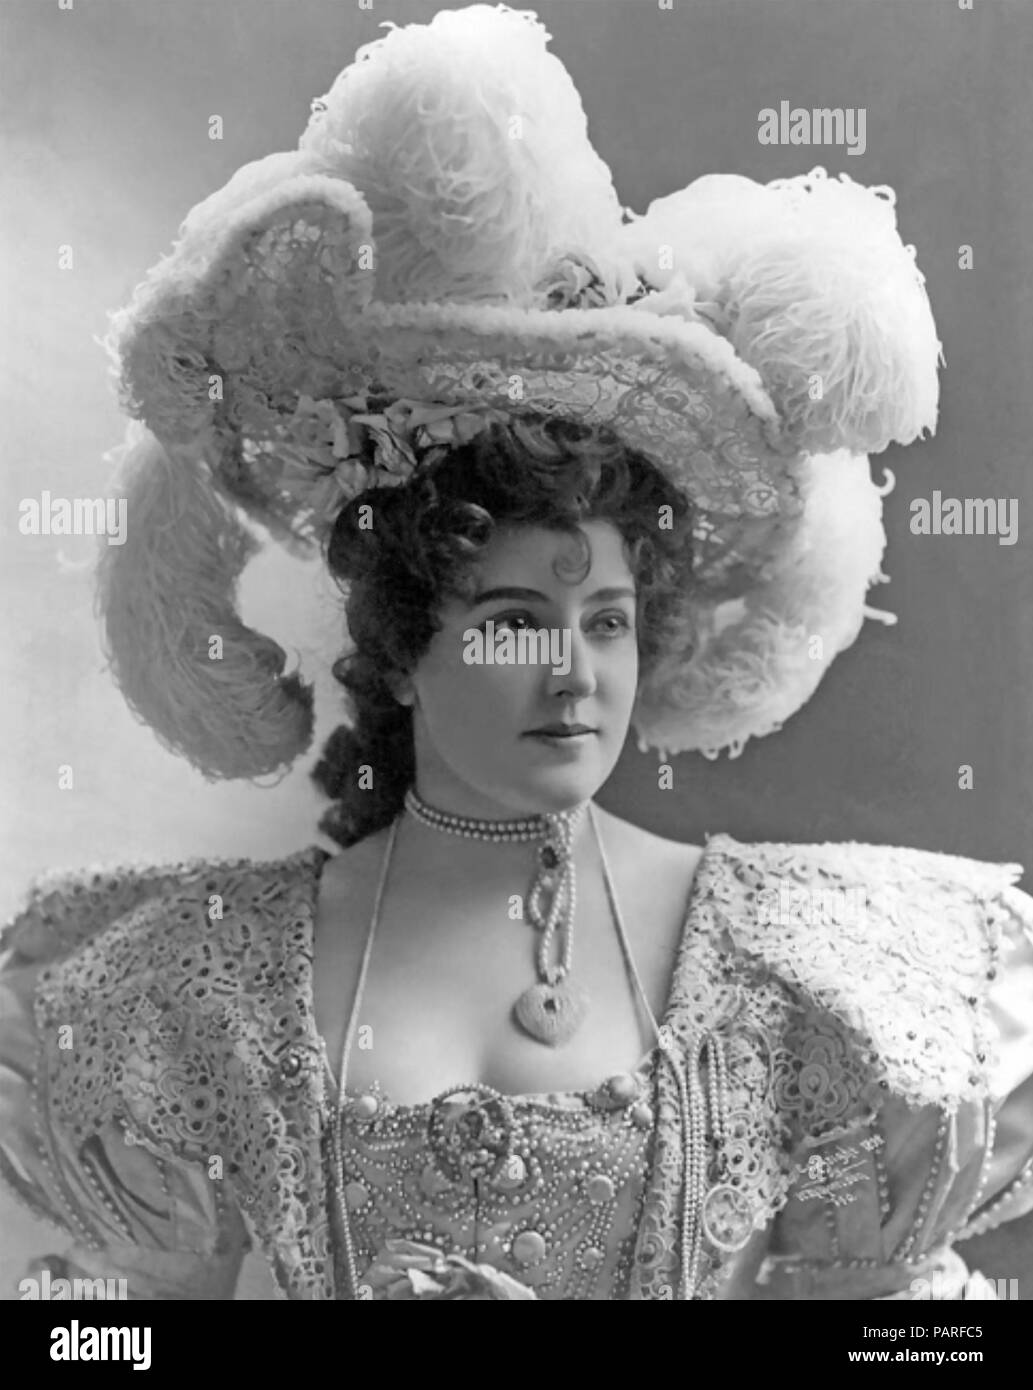 LILLIAN RUSSELL (1860-1922) American stage actress and singer. - Stock Image